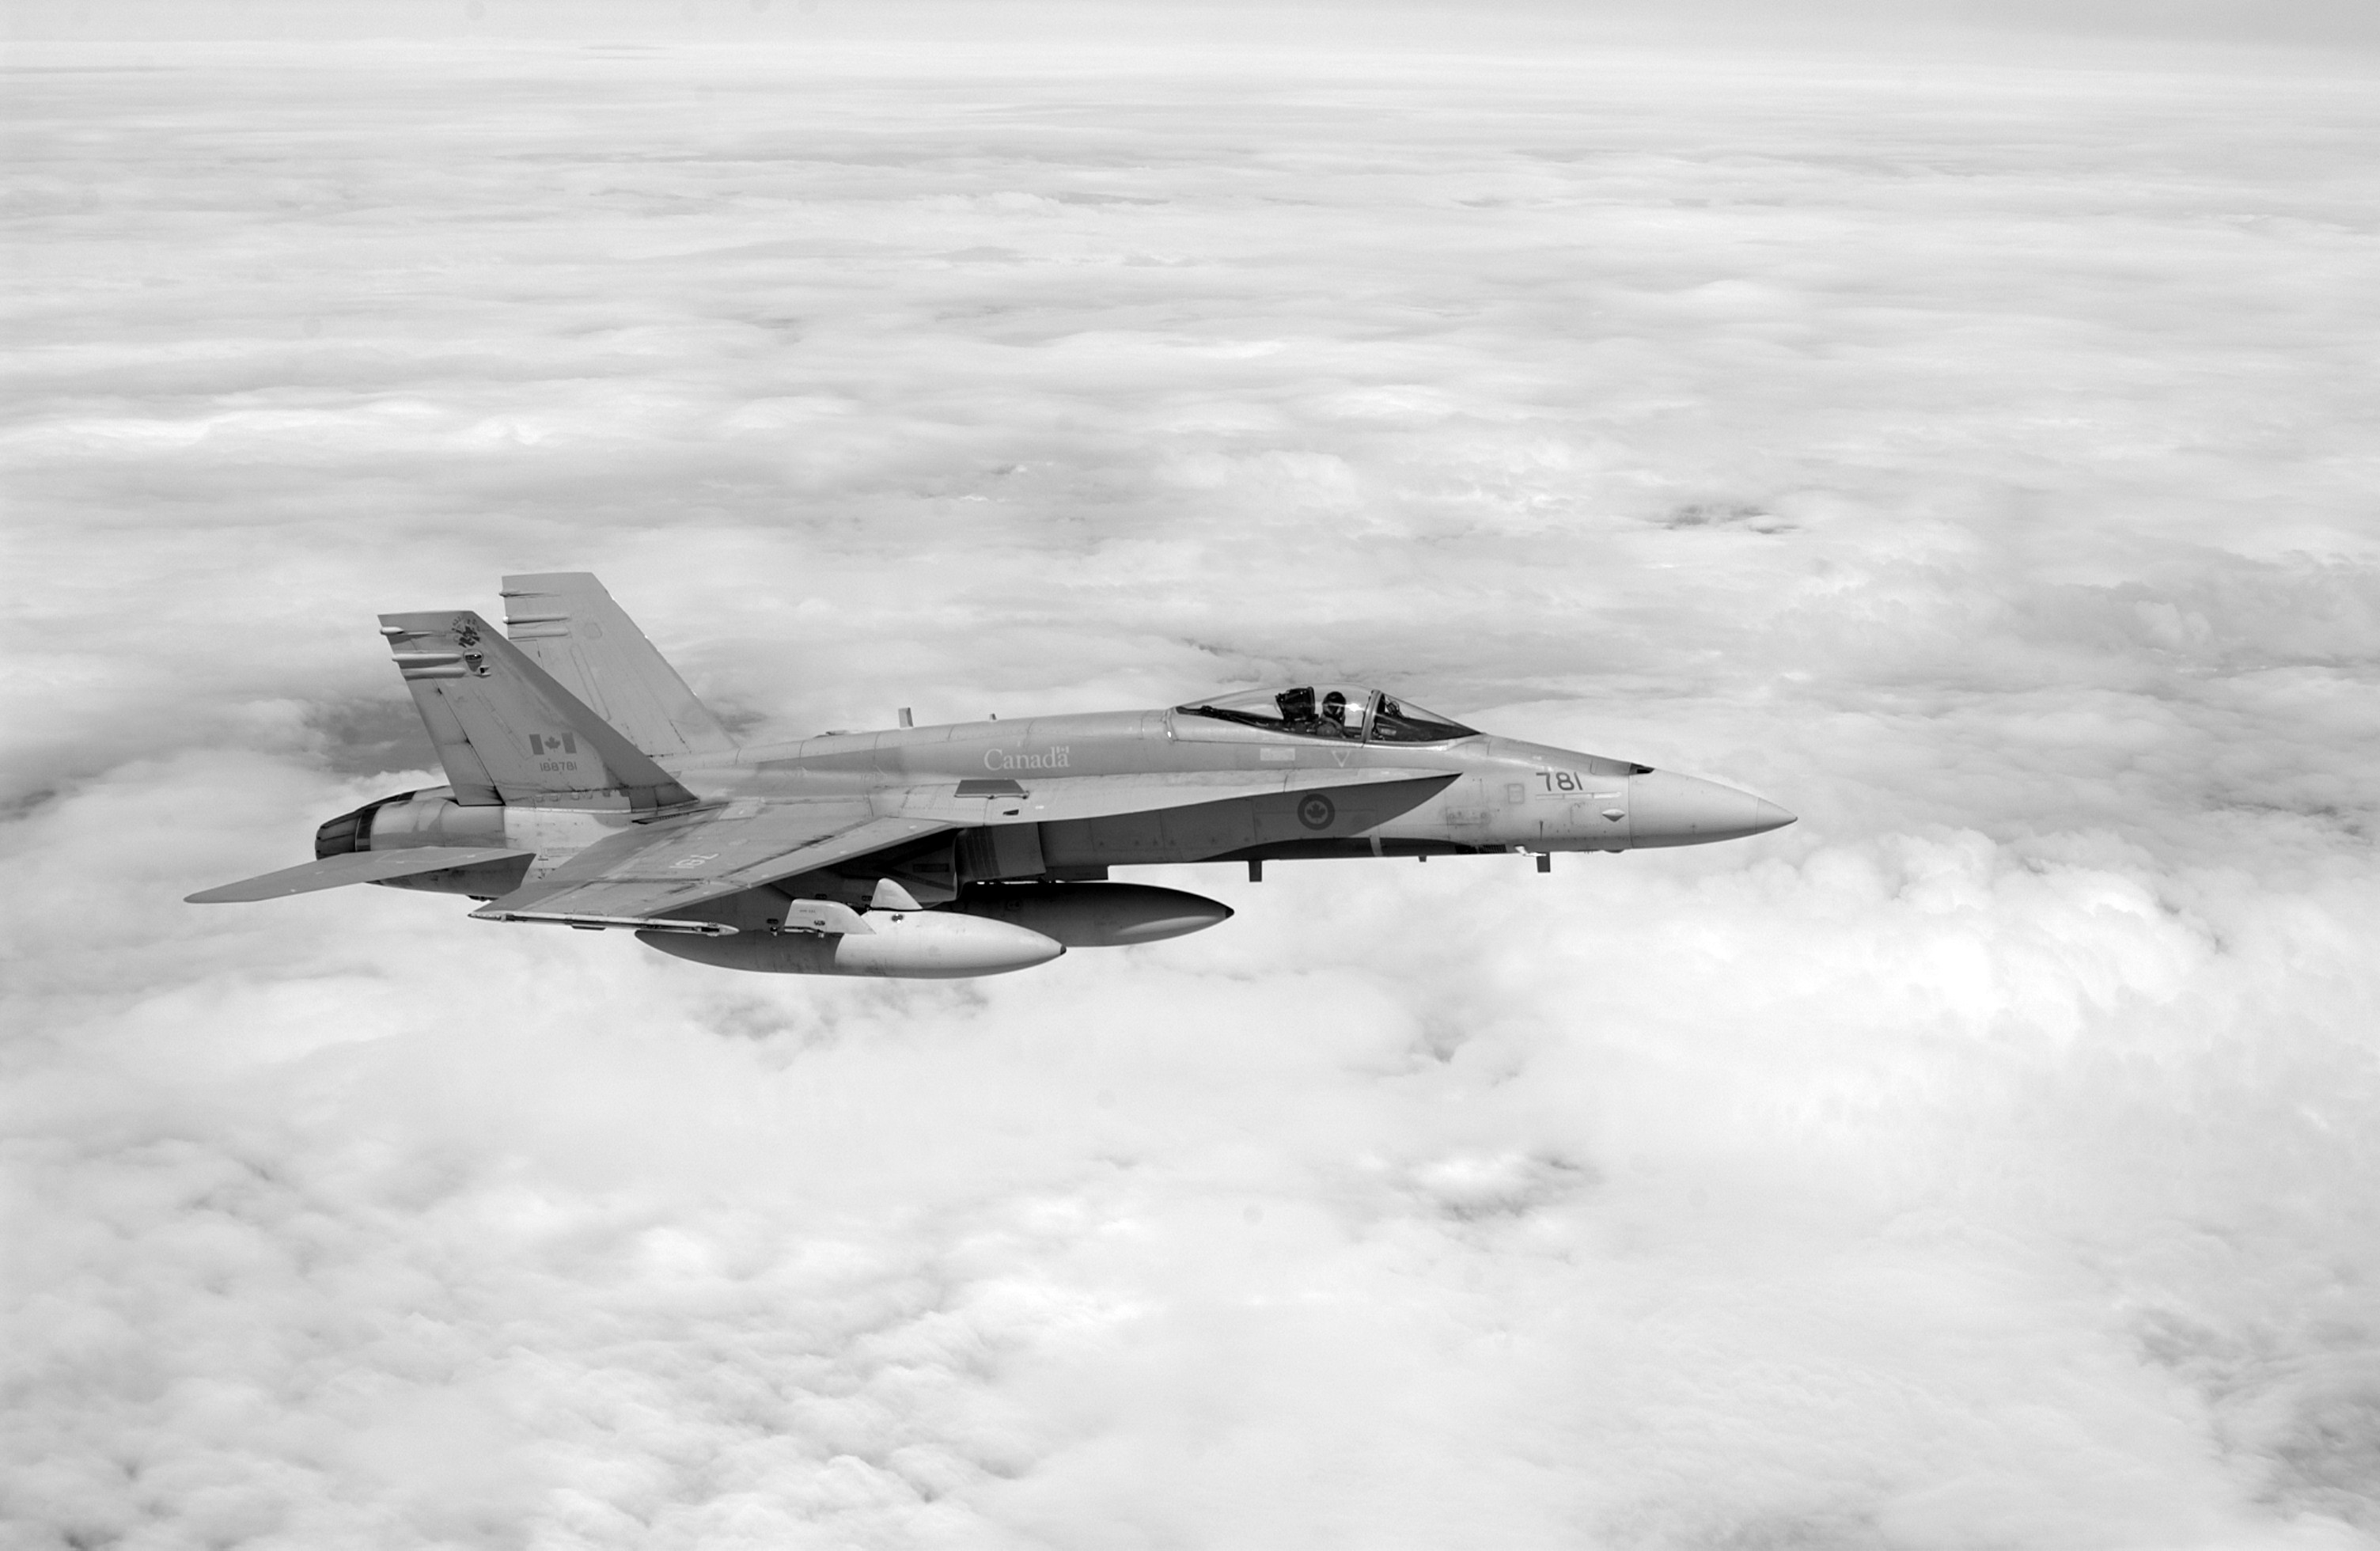 A cf-18 en route to ottawa to celebrate the 60th anniversary of d-day. photo